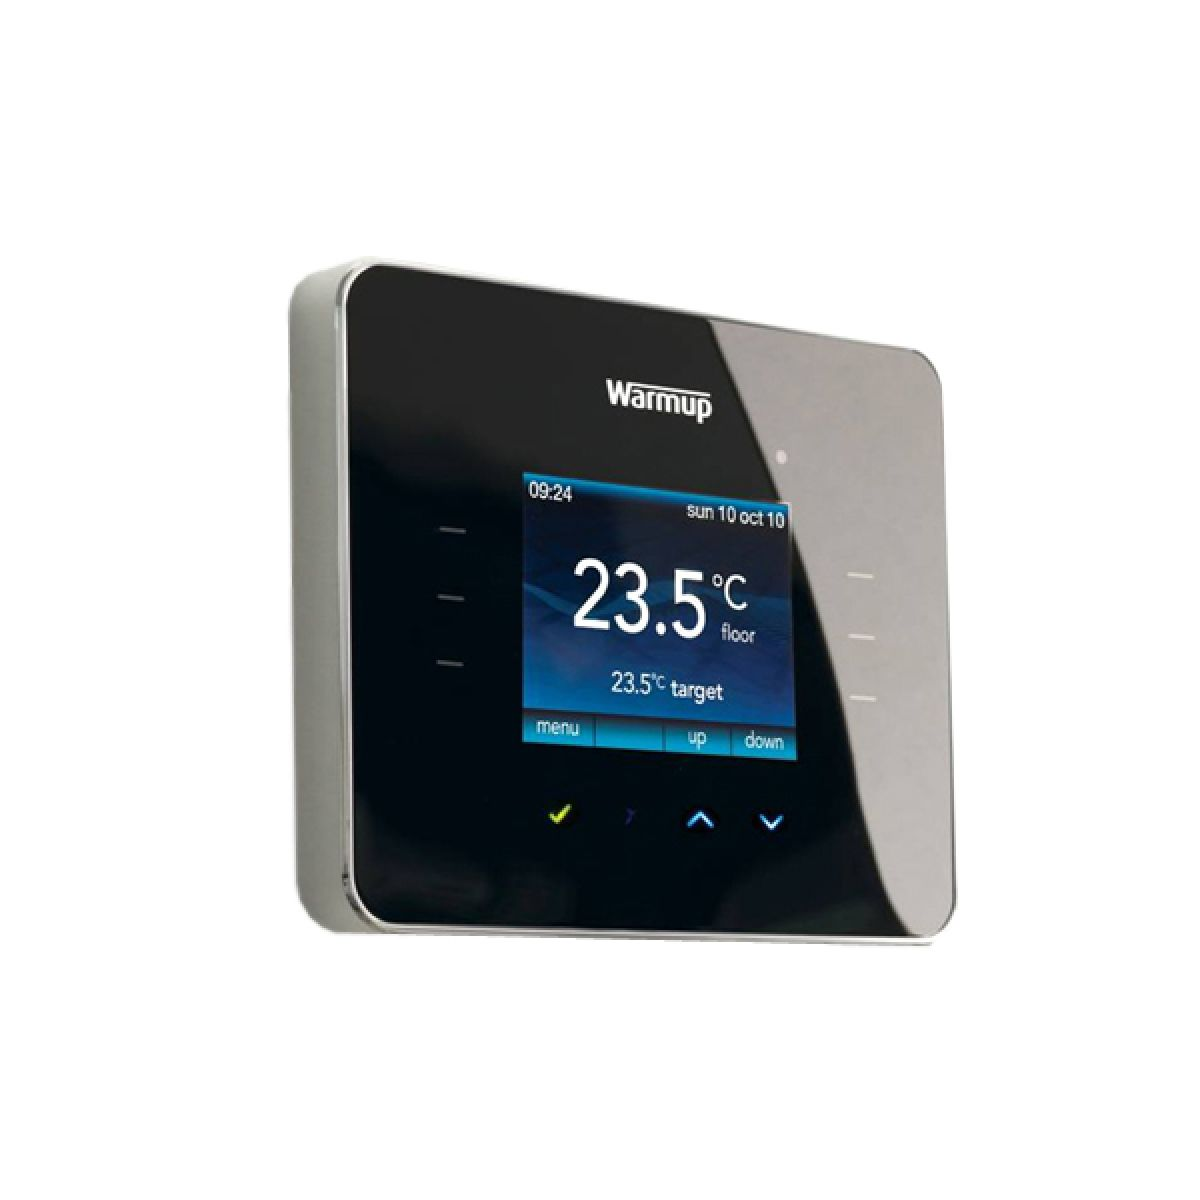 Warmup 3iE Black Programmable Thermostat